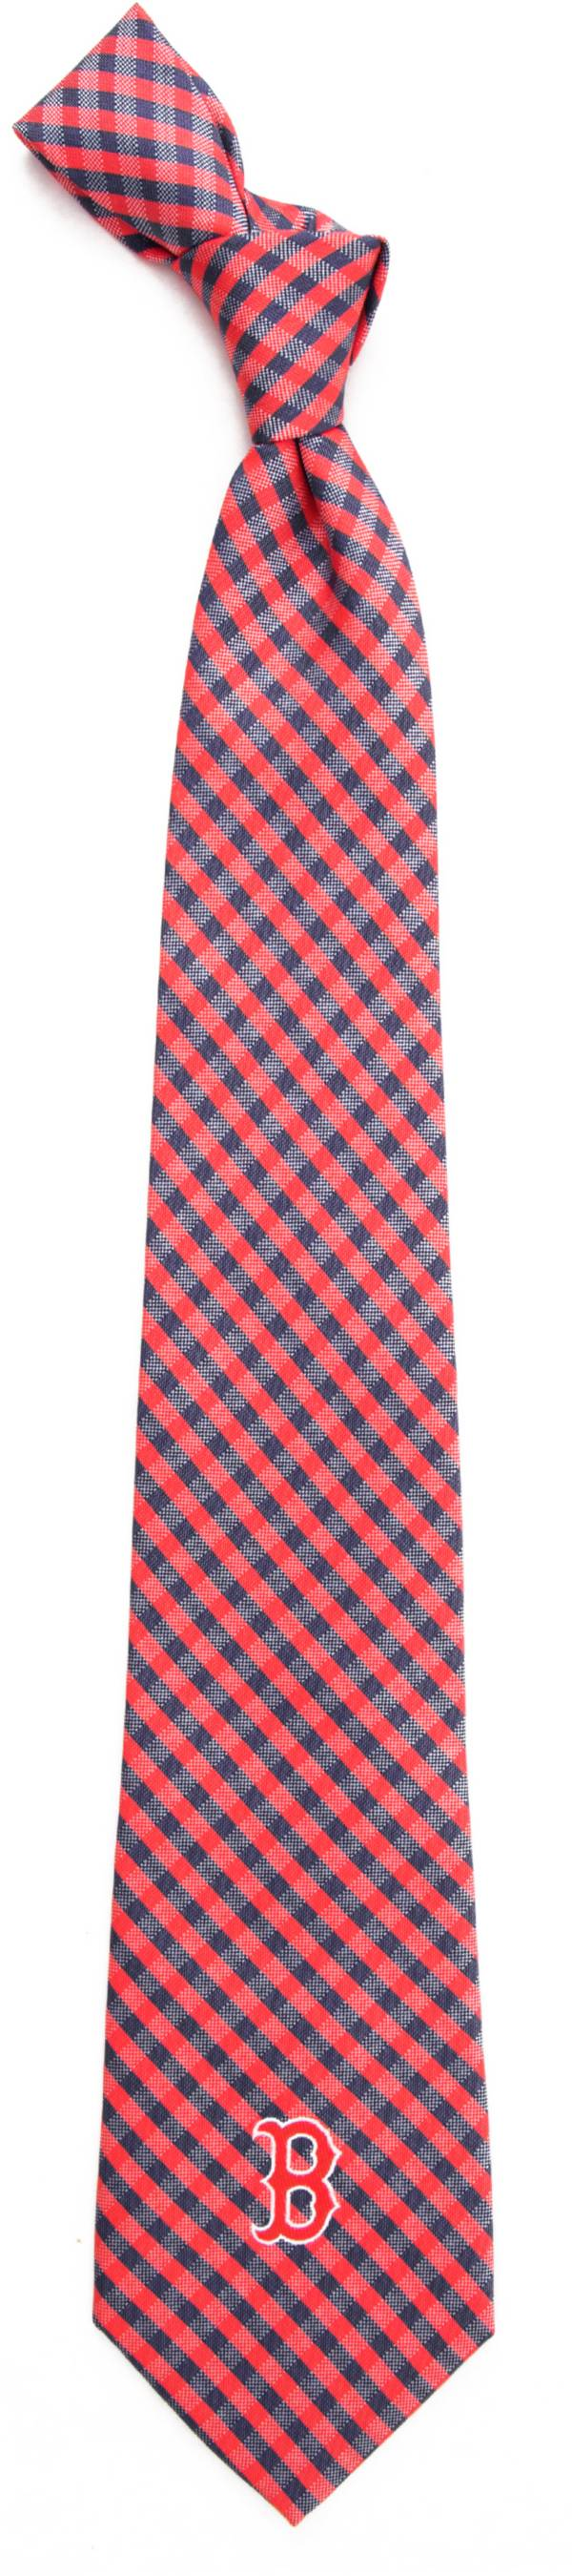 Eagles Wings Boston Red Sox Gingham Necktie product image